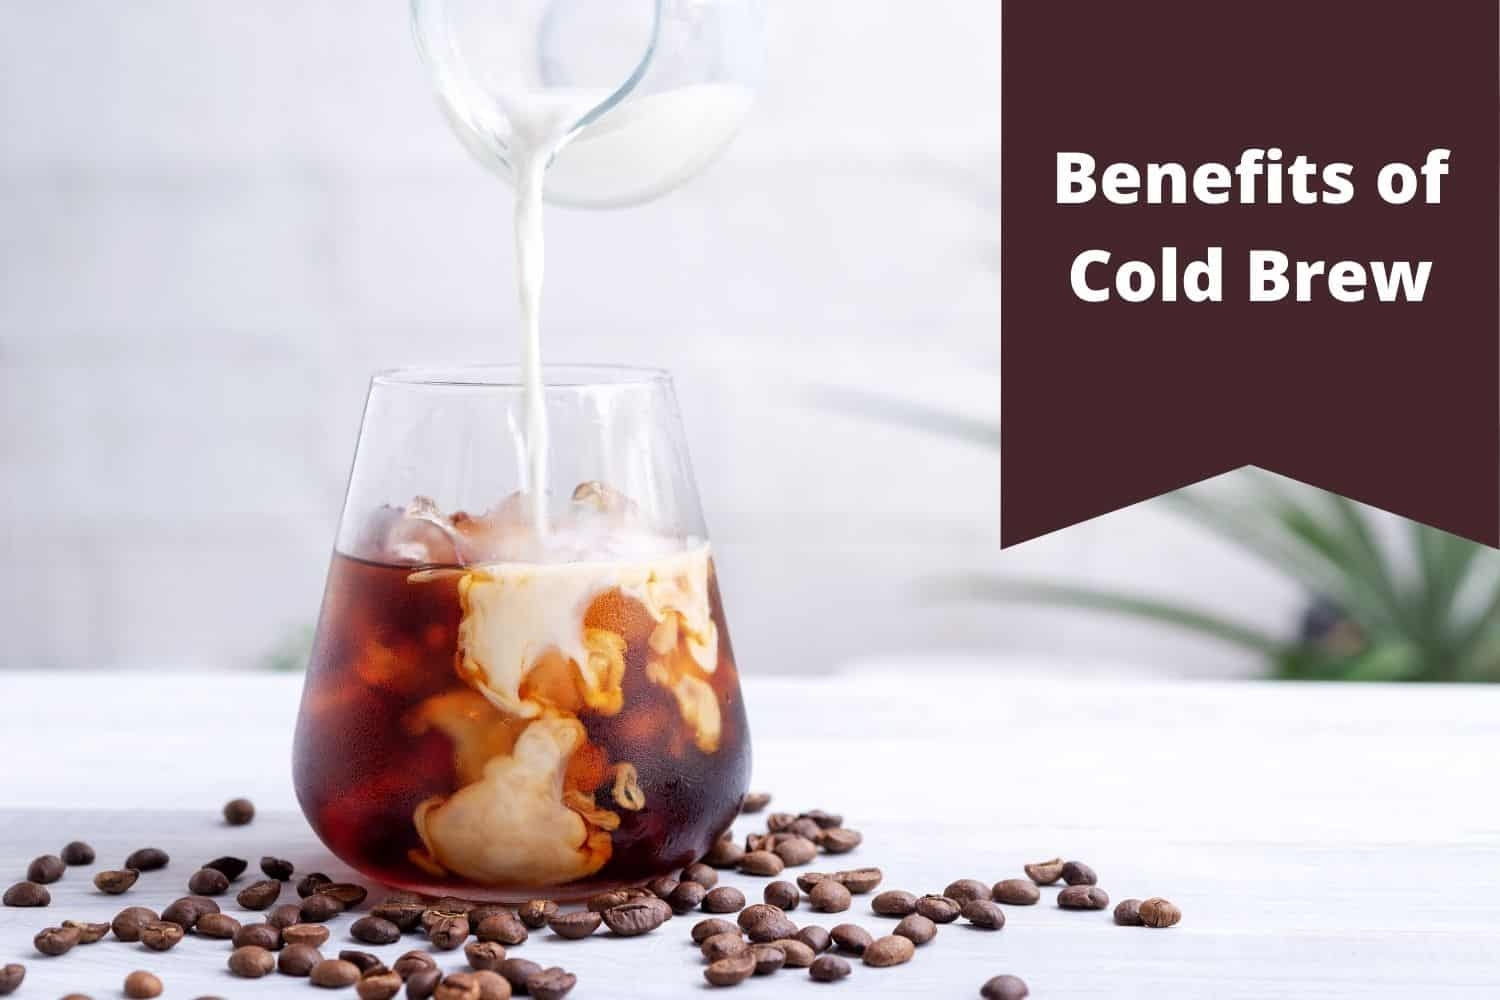 benefits of cold brew coffee.